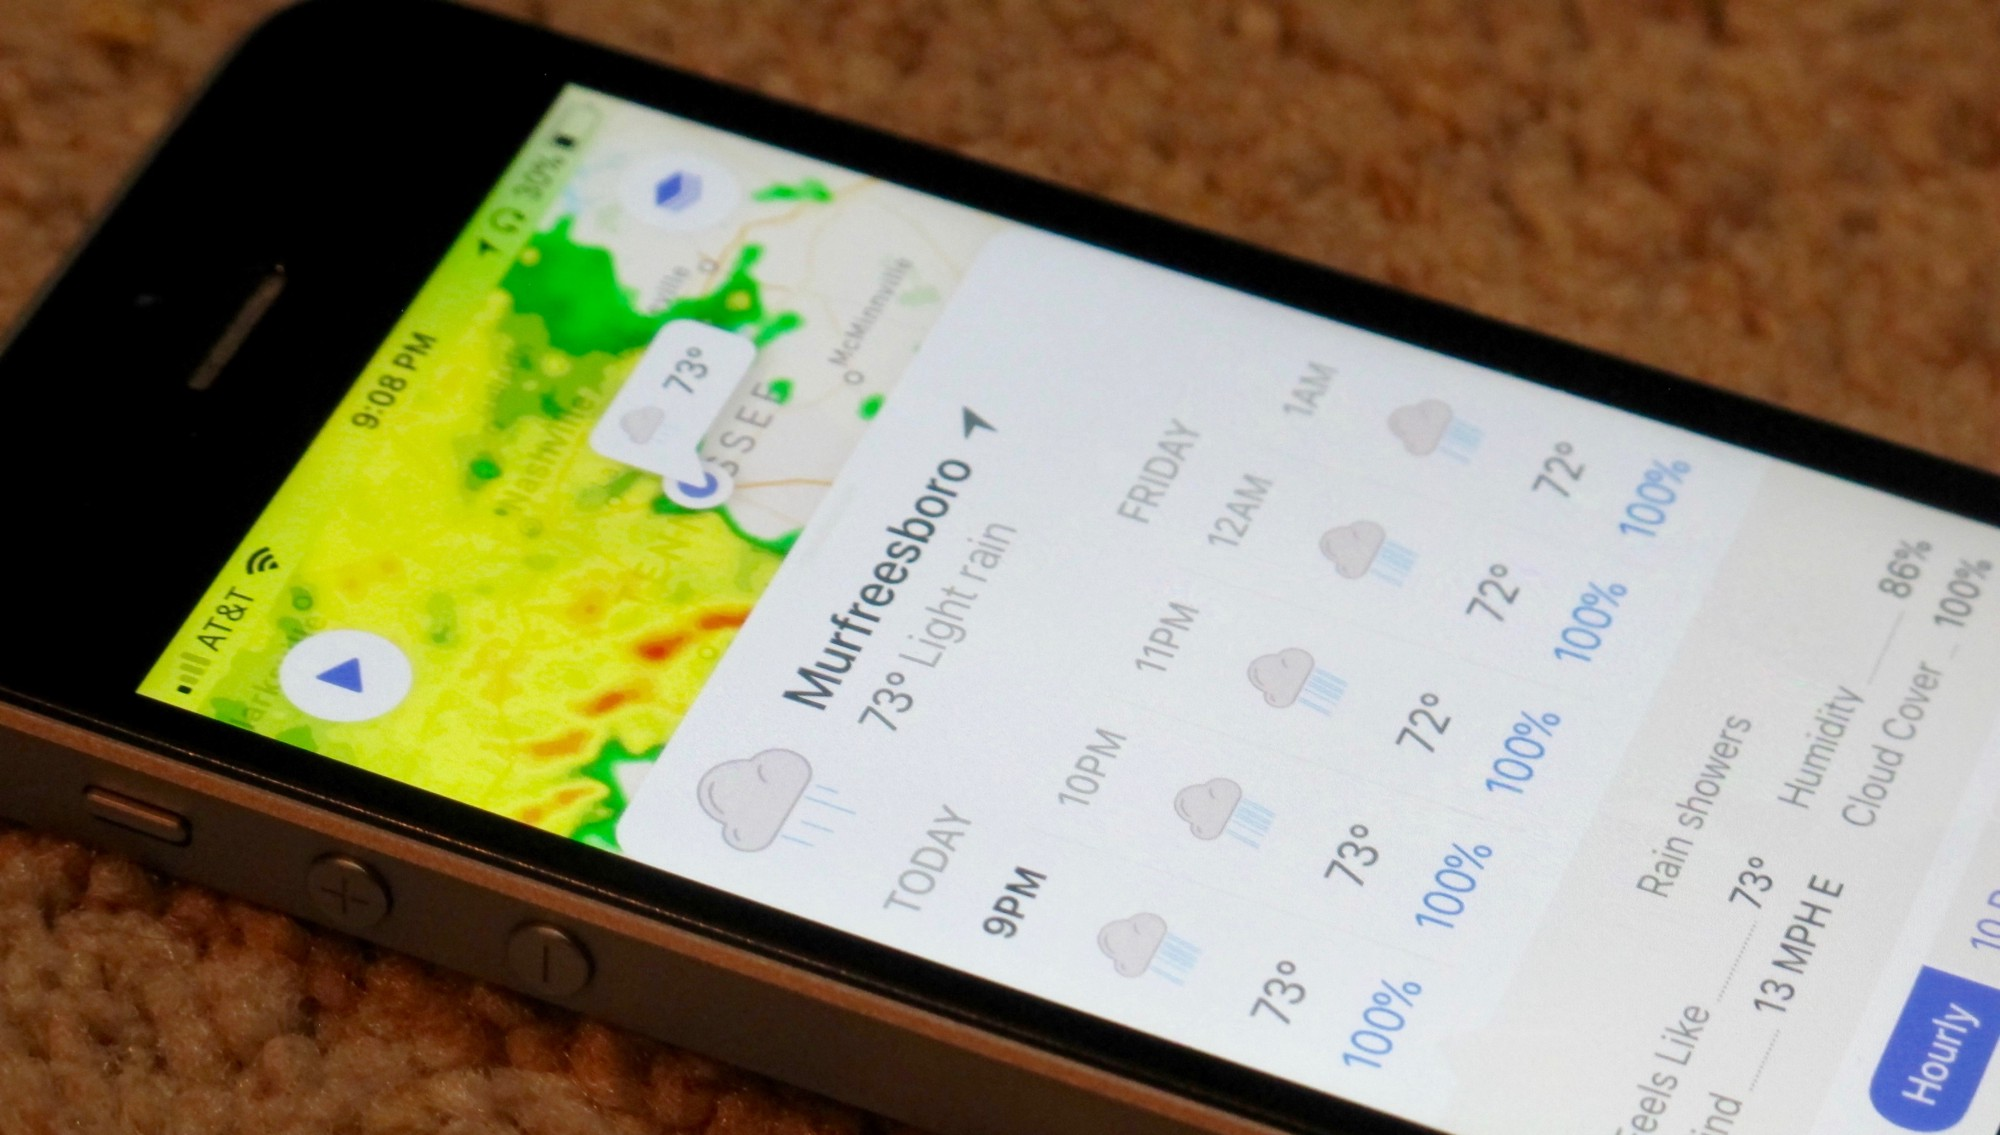 In Weather Atlas, I May Have Found My Perfect iOS Weather App